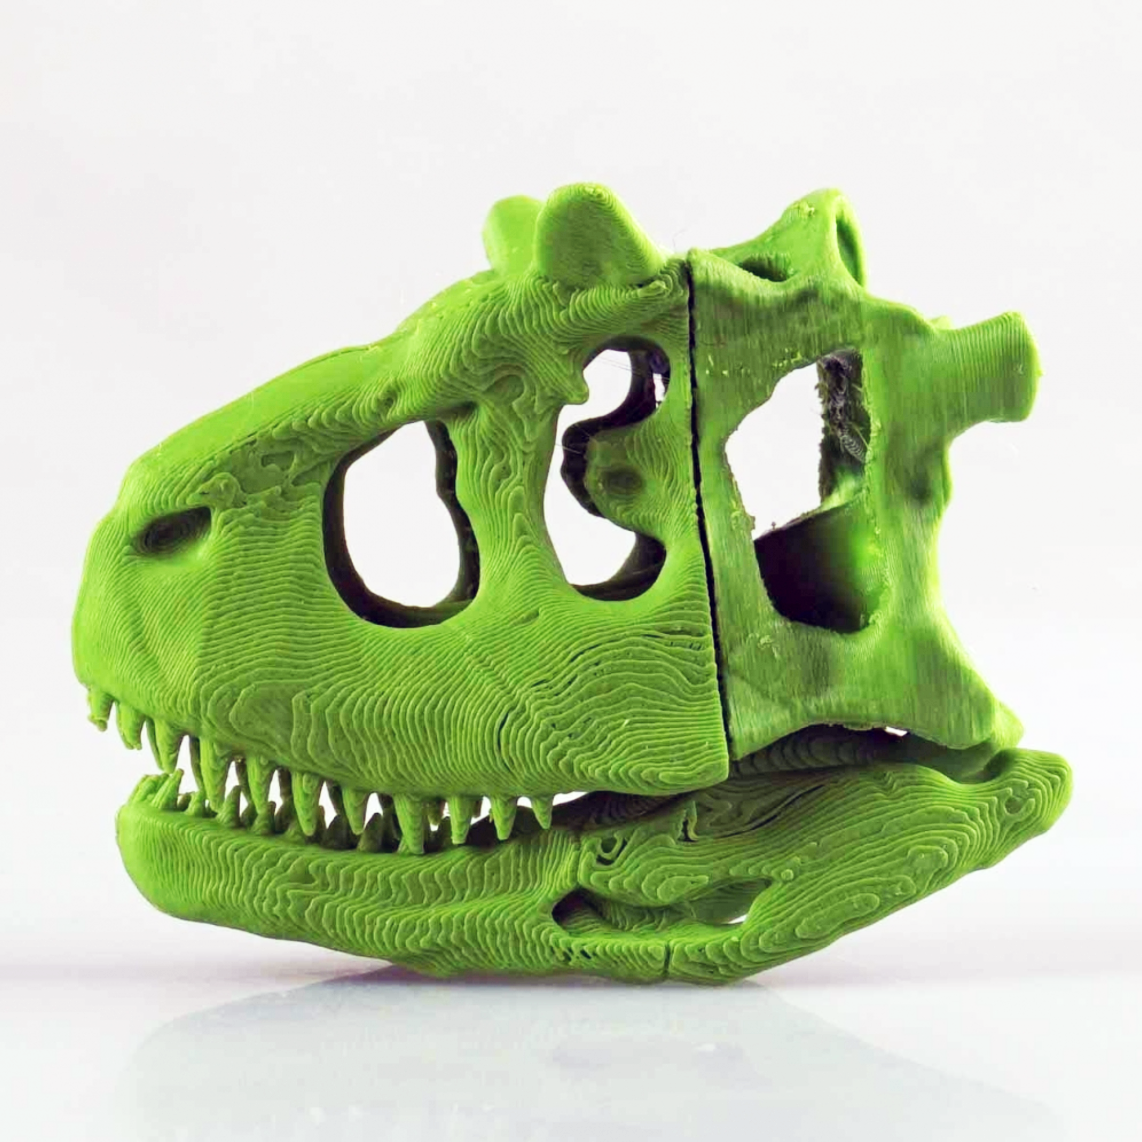 Capture d'écran 2017-03-28 à 15.25.30.png Download free STL file Dinosaur Skull • 3D printing template, LordLilapause